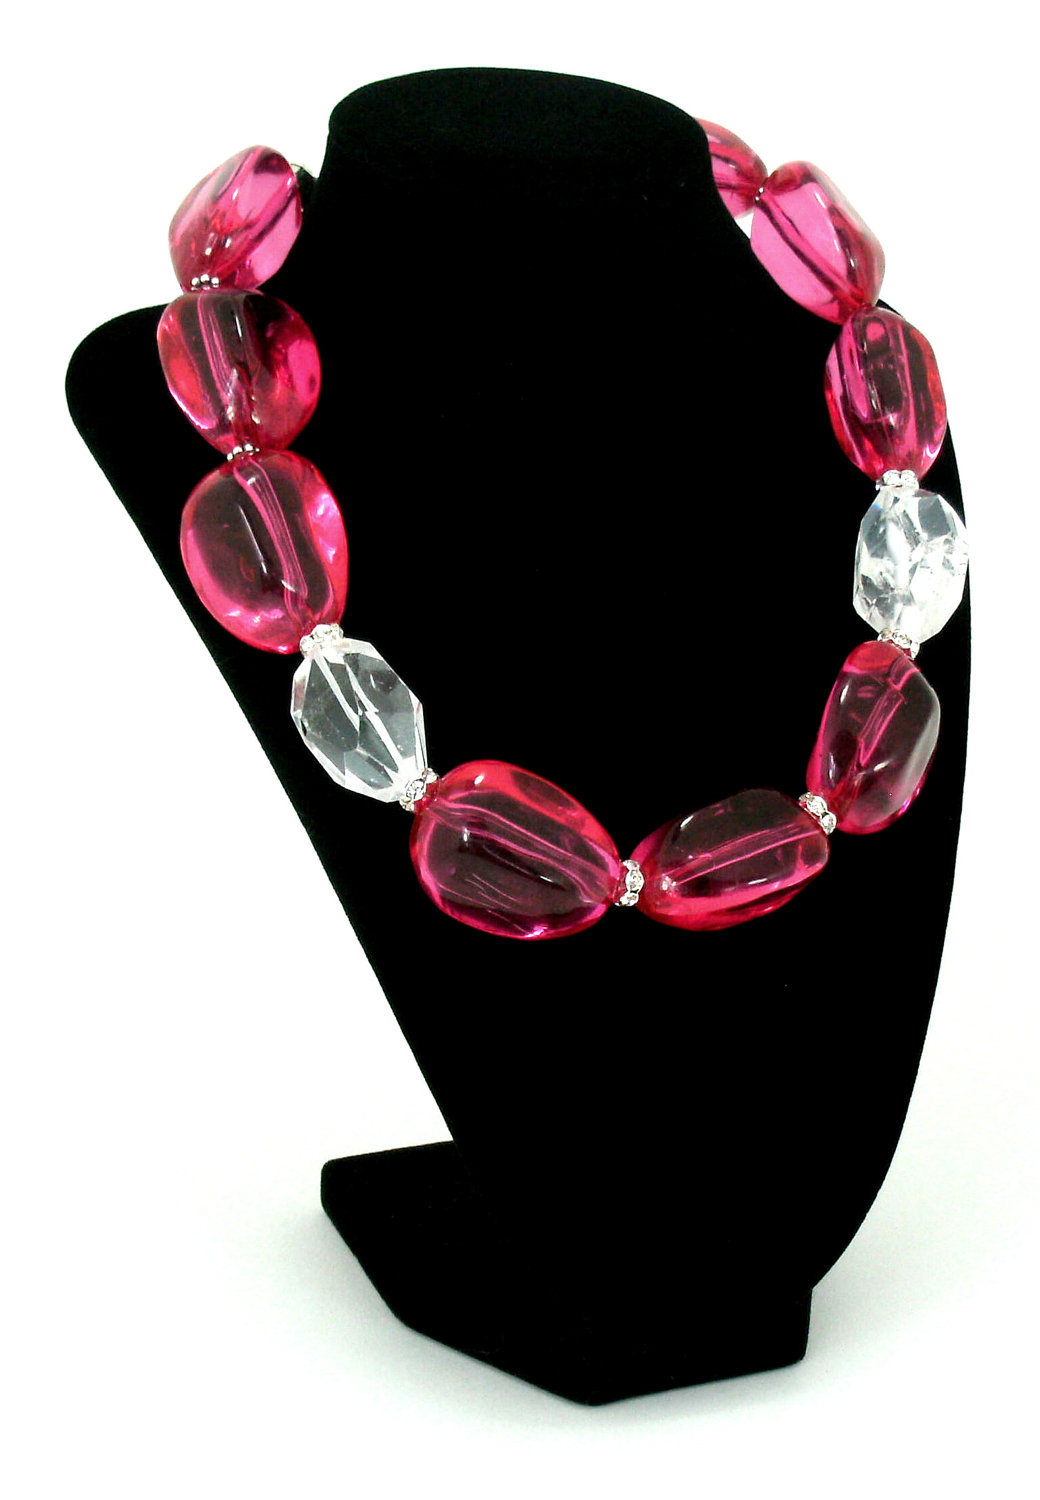 Hot Pink Resin  And Crystal Quartz  Choker Necklace One of a Kind Handcrafted